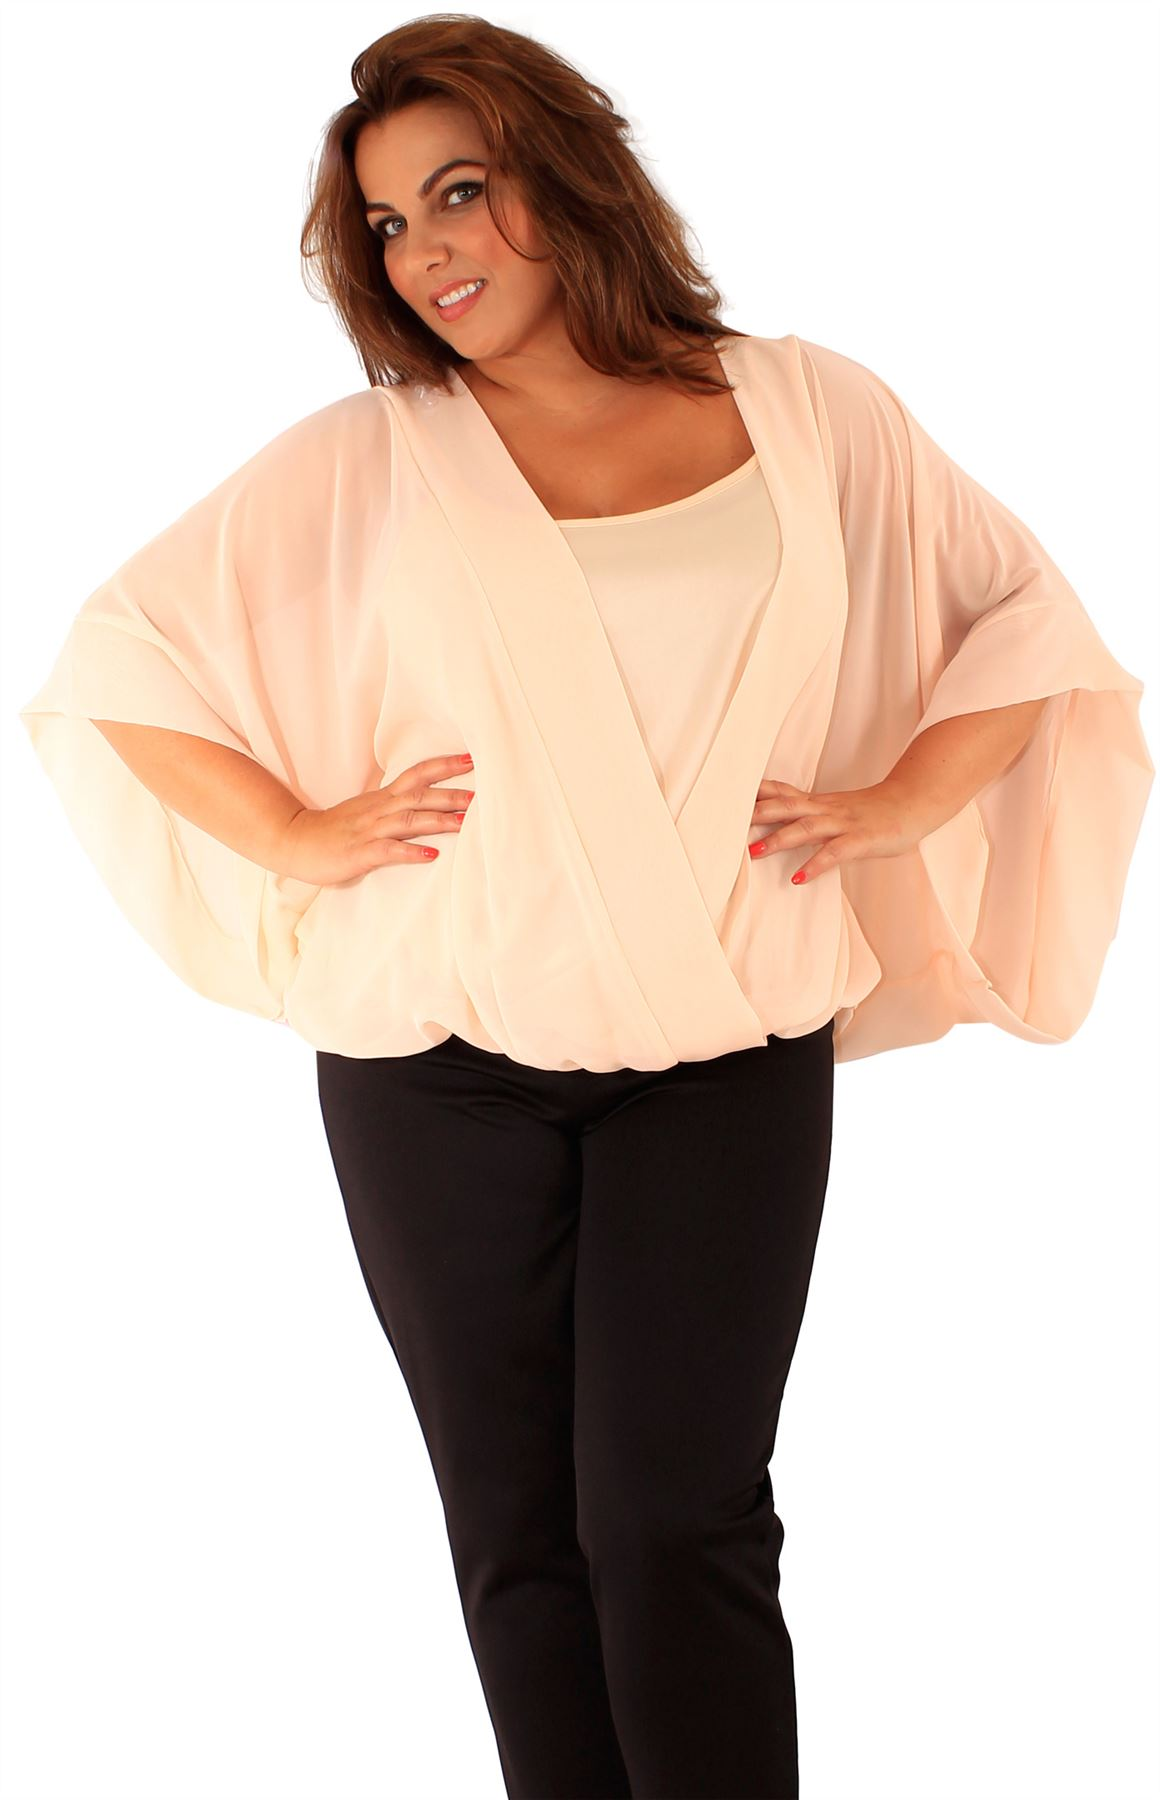 Plus Size Tops Shop Curvissa's fabulous range of plus size tops to find the perfect style for every outfit. From camis to tunics, we've got every style covered.